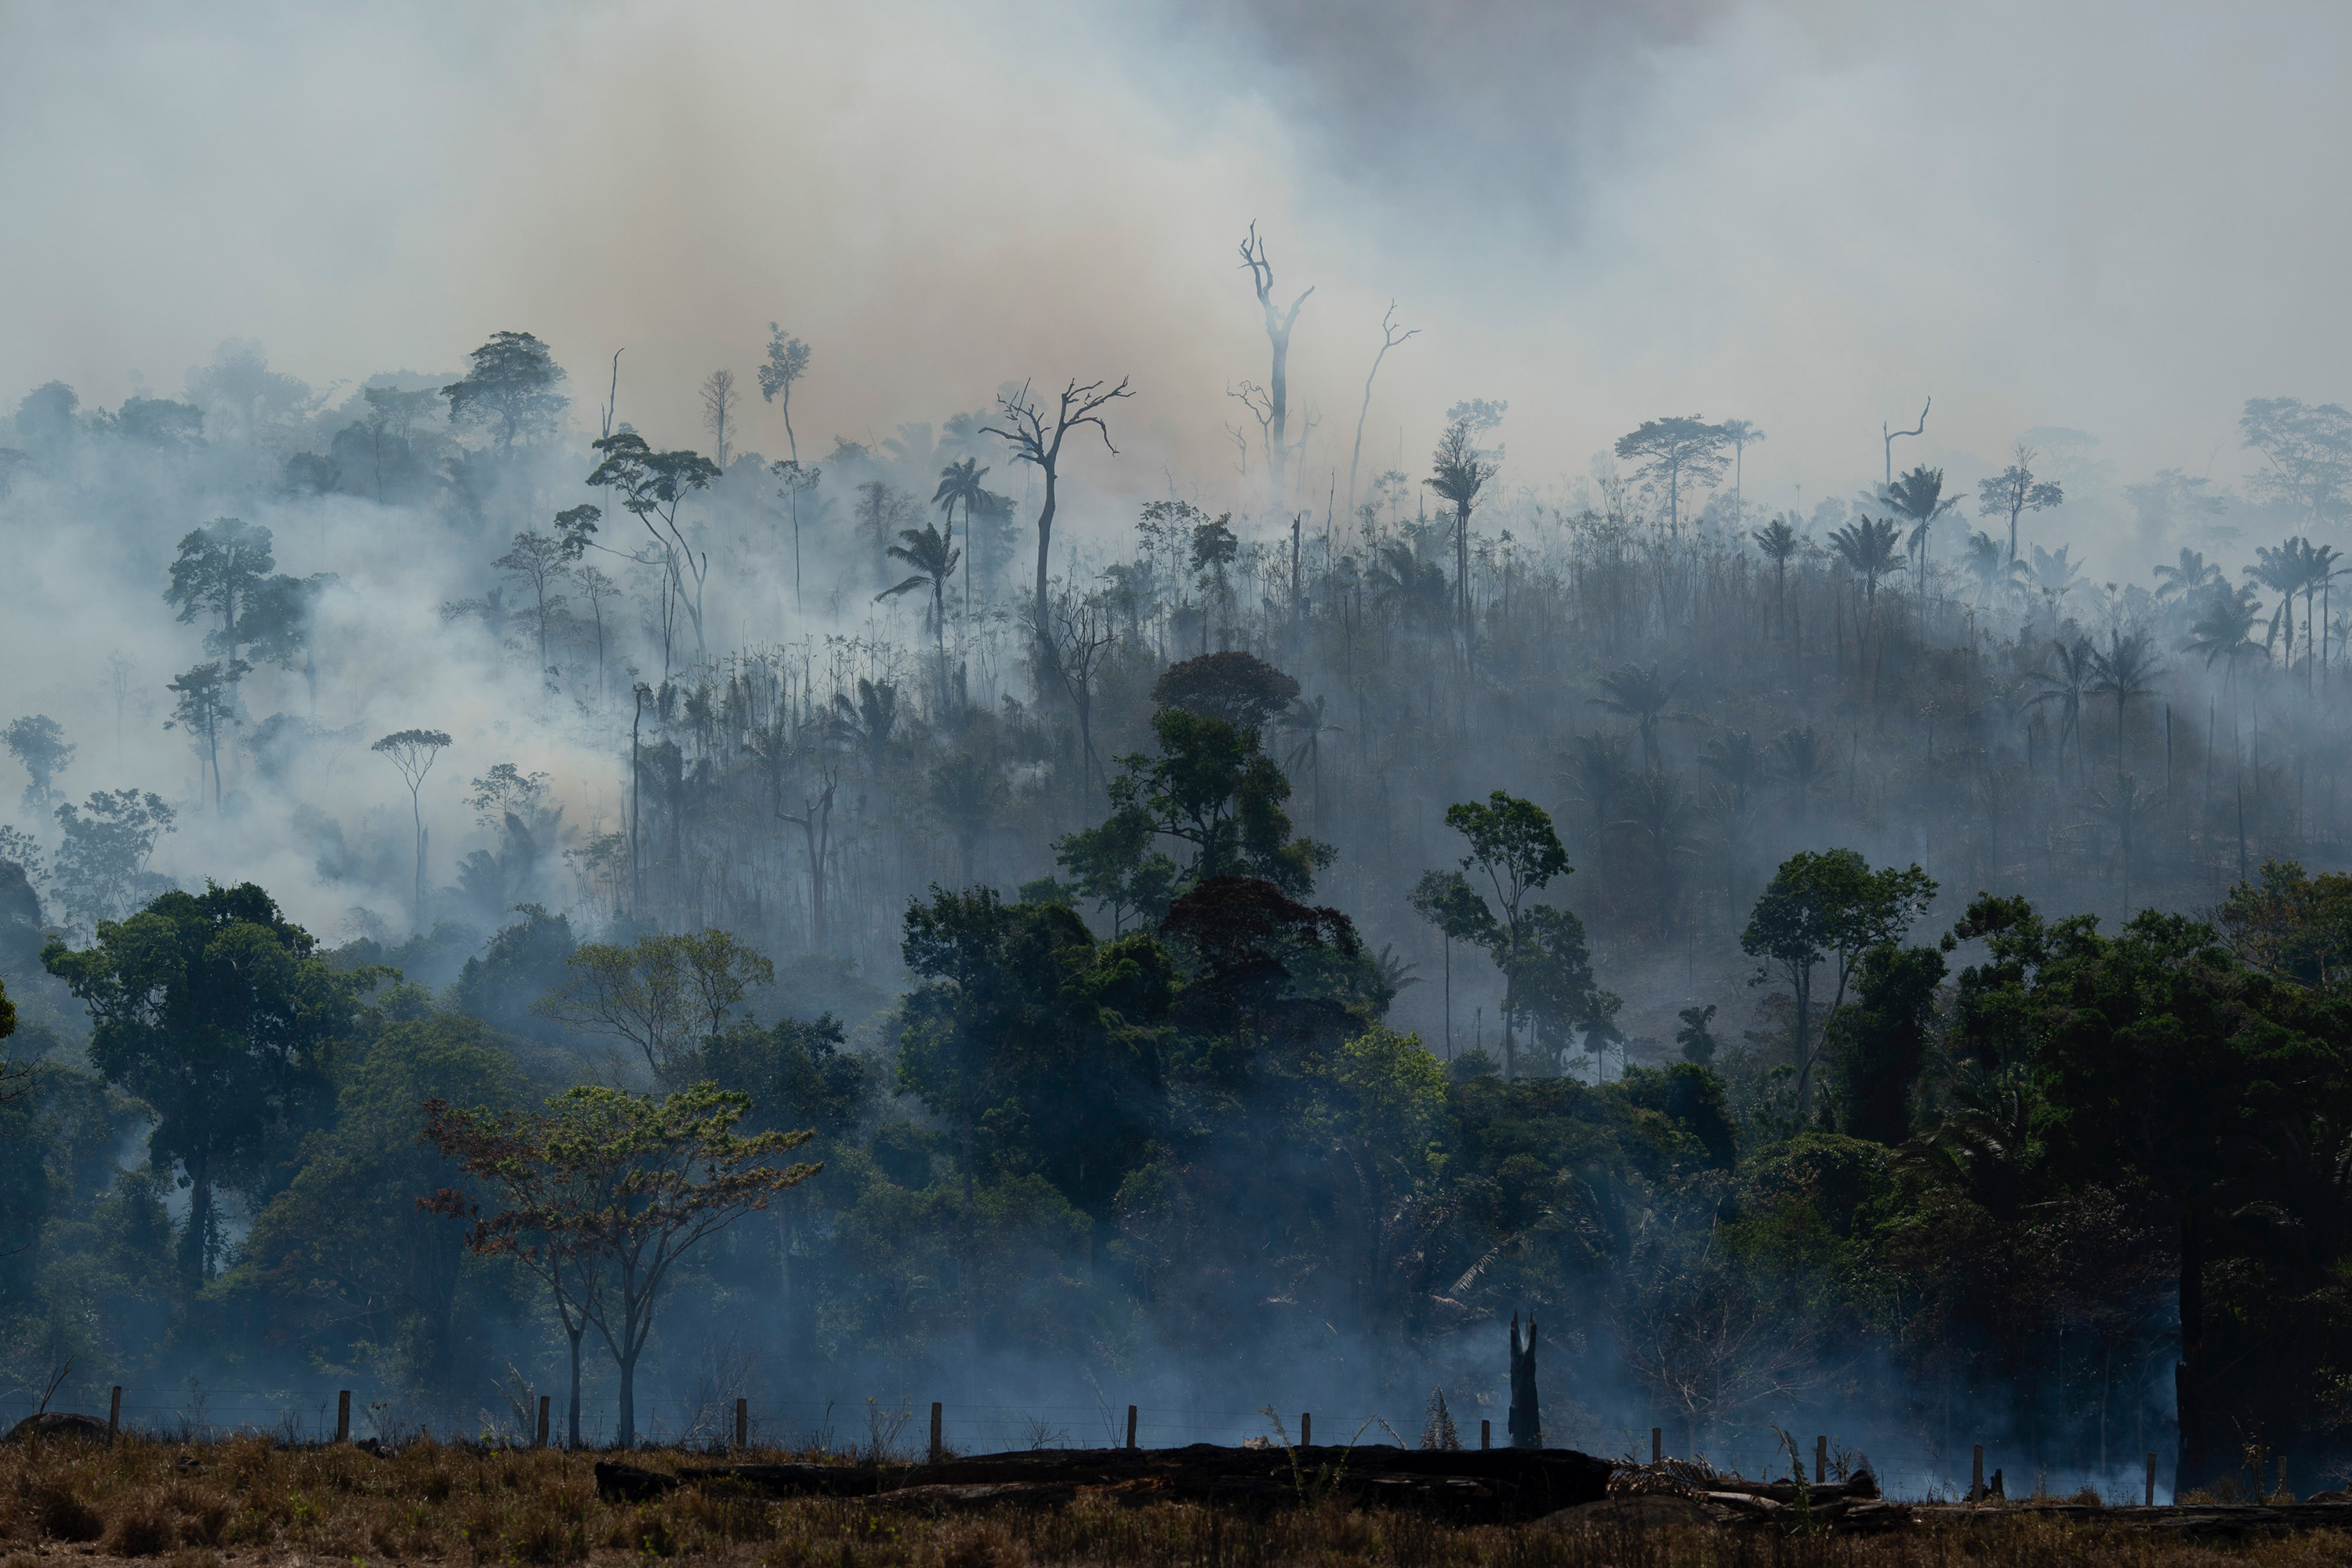 Fire consumes the Amazon rainforest in Altamira, Brazil, on Tuesday, Aug. 27, 2019. Fires across the Brazilian Amazon have sparked an international outcry for preservation of the world's largest rainforest.